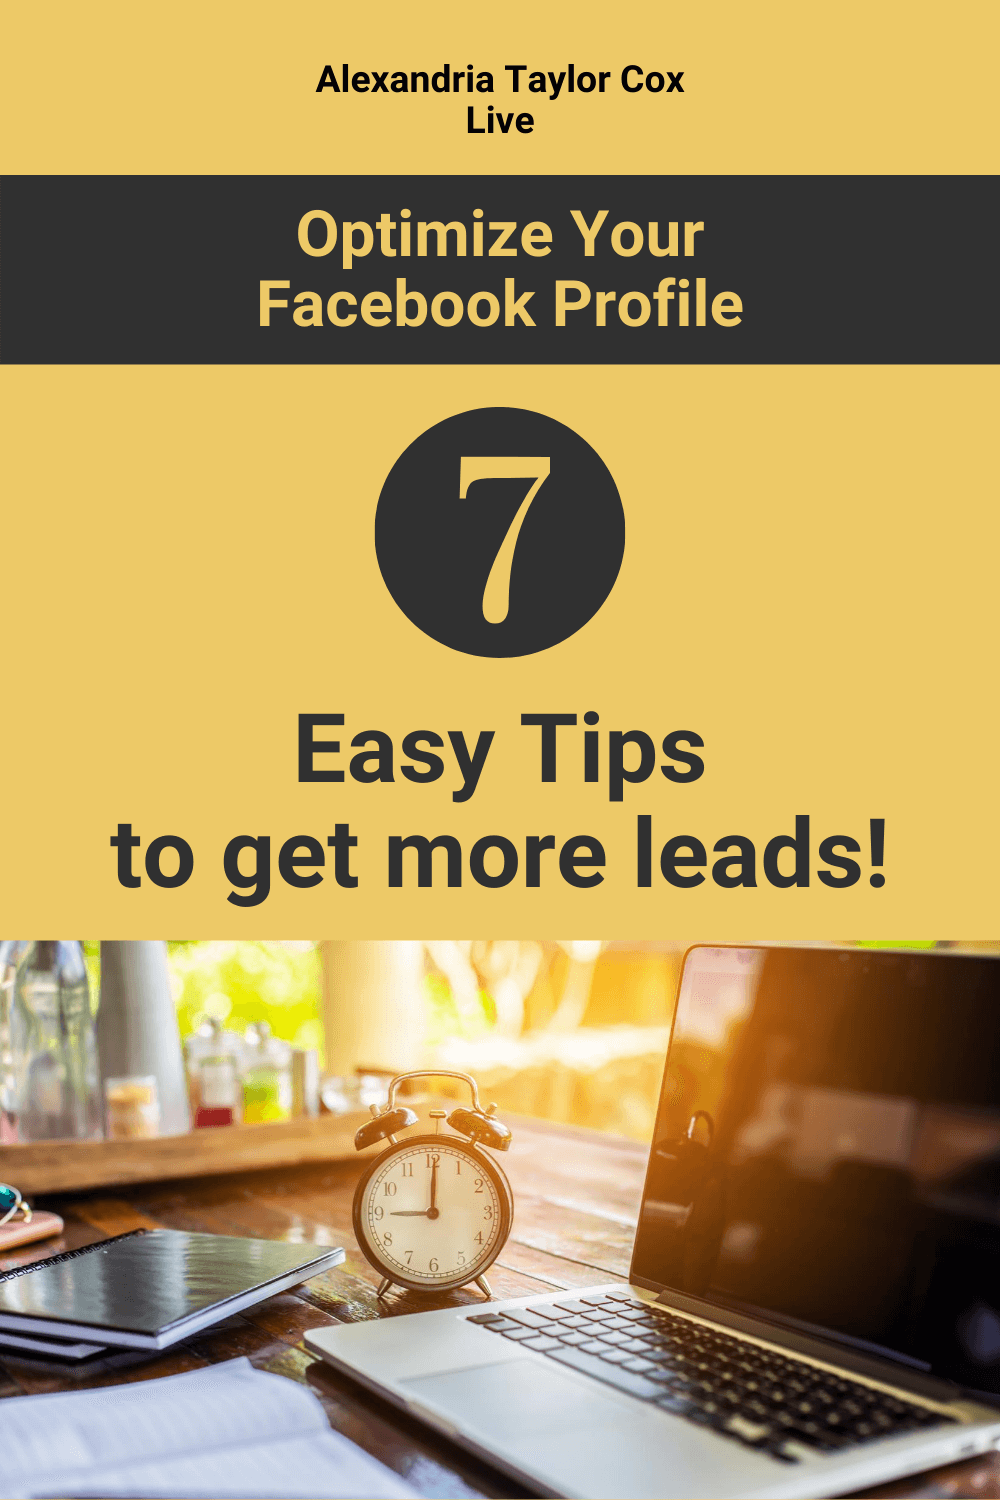 Optimize your Facebook profile 7 easy tips to get more leads!